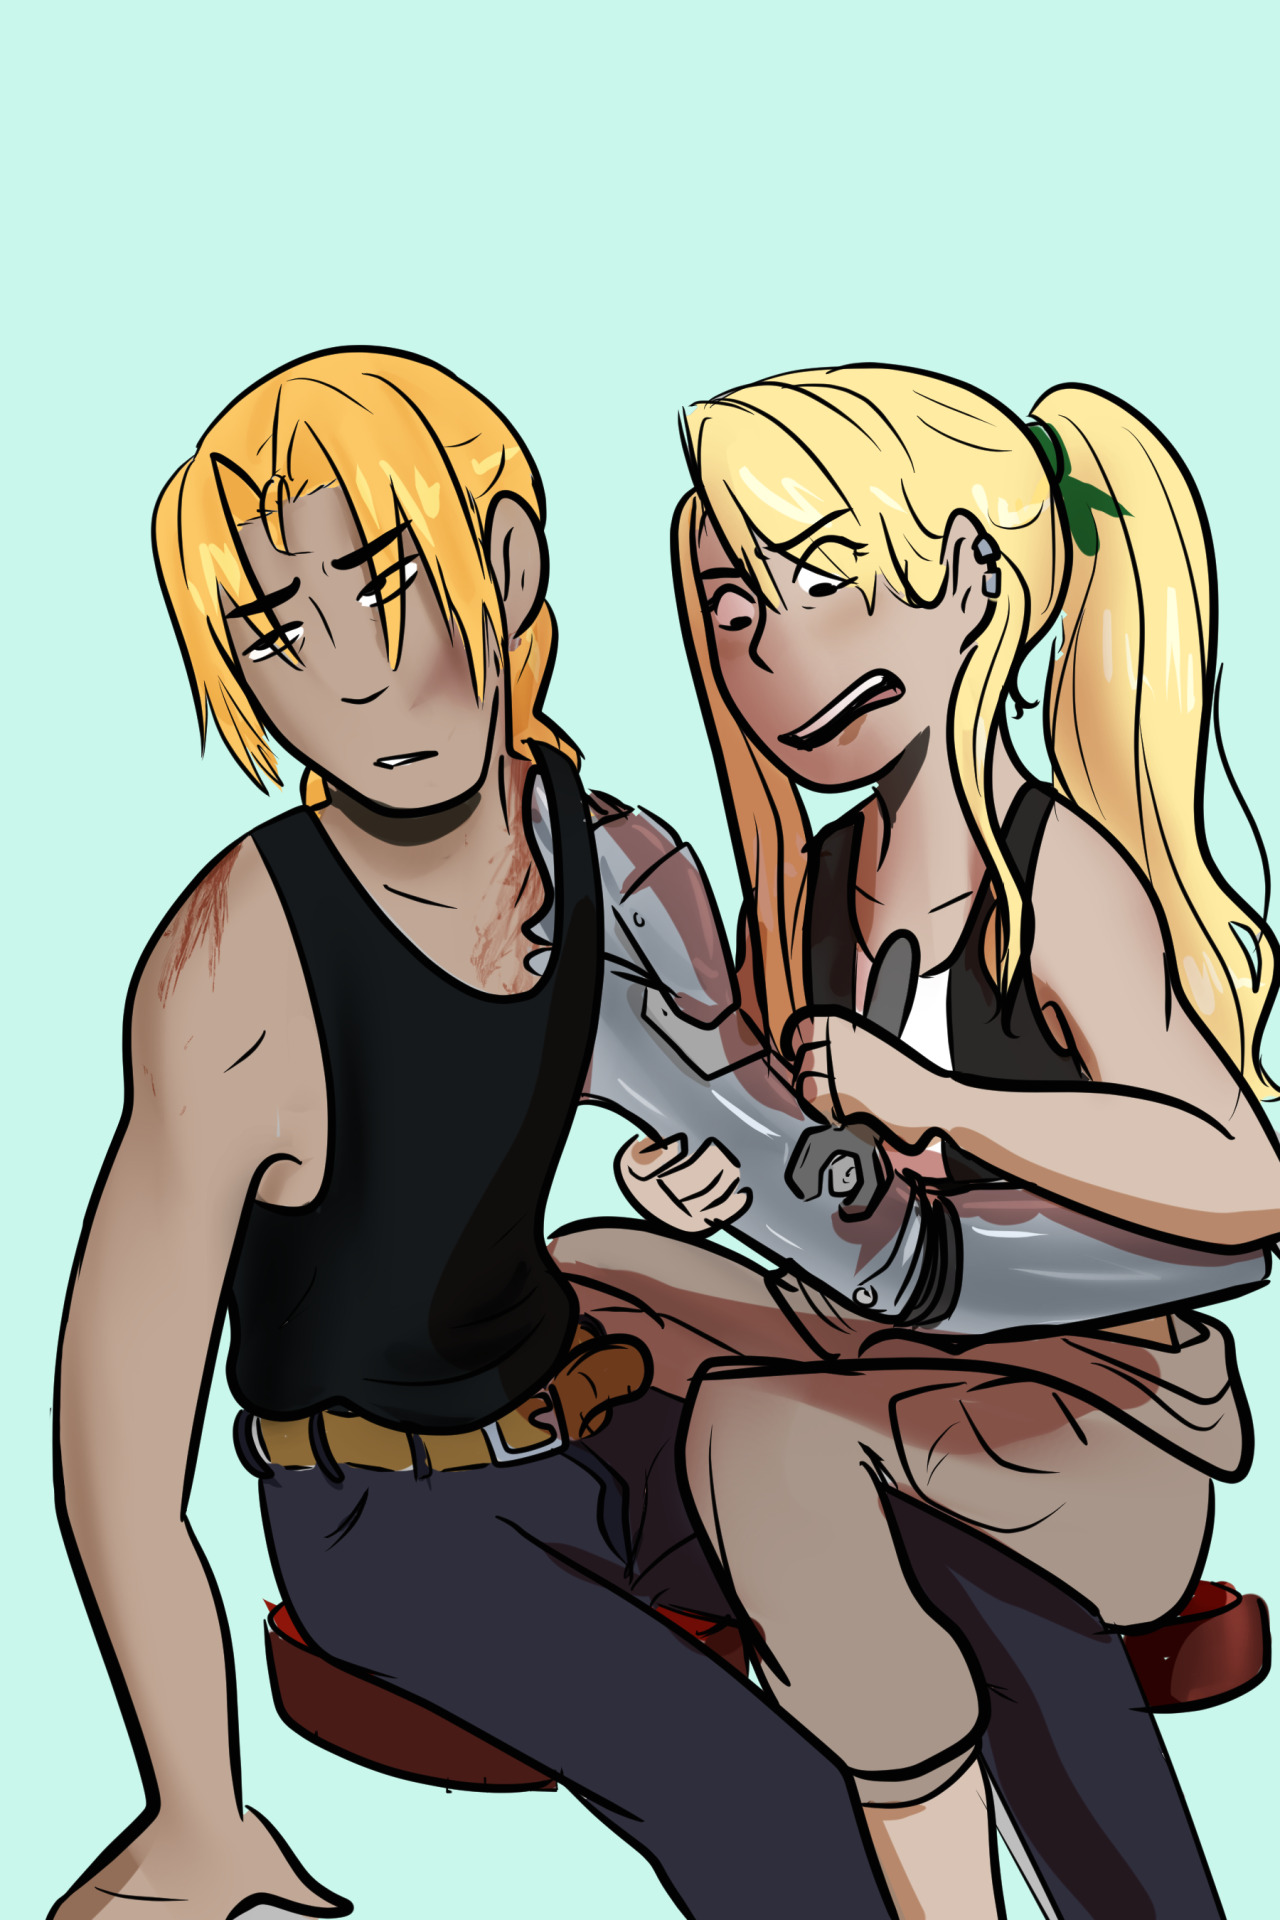 Winry: damit Ed, one of these days I'm gonna say no figure it out your selfEd: I know…Winry: (goes on a rant about how Ed should treat his prospects better)Ed: yeah I know #fmab#fma winry#fullmetal alchemist #fullmetal alchemist brotherhood #fma edward #finished fmab in like 2 weeks #anime#fanart